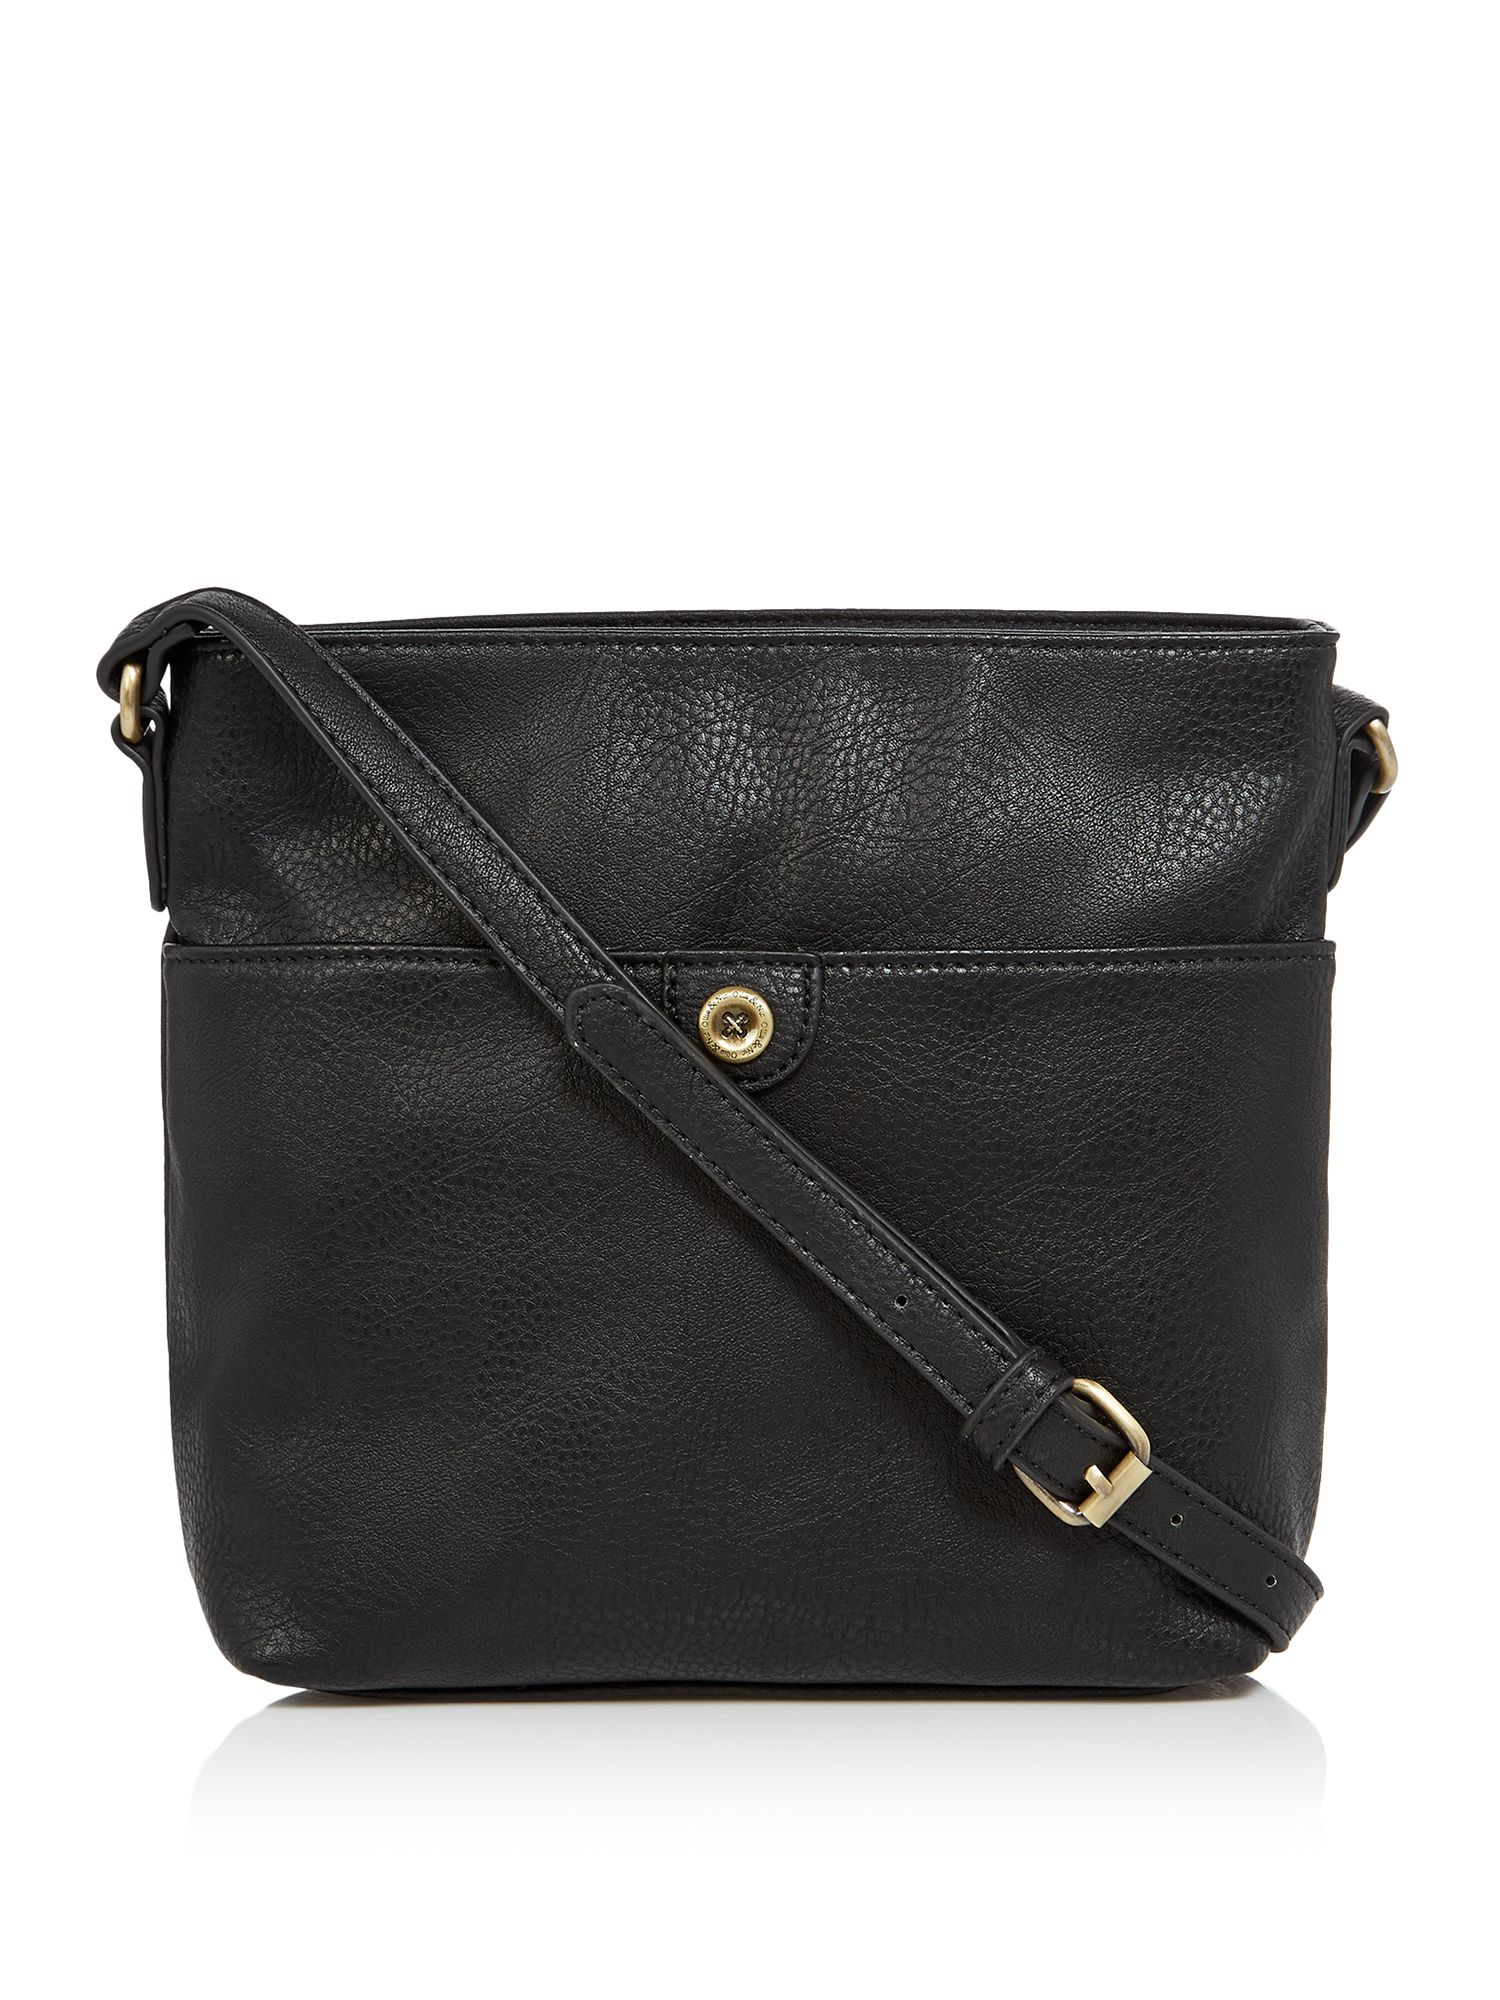 Ollie & Nic Nora Crossbody, Black